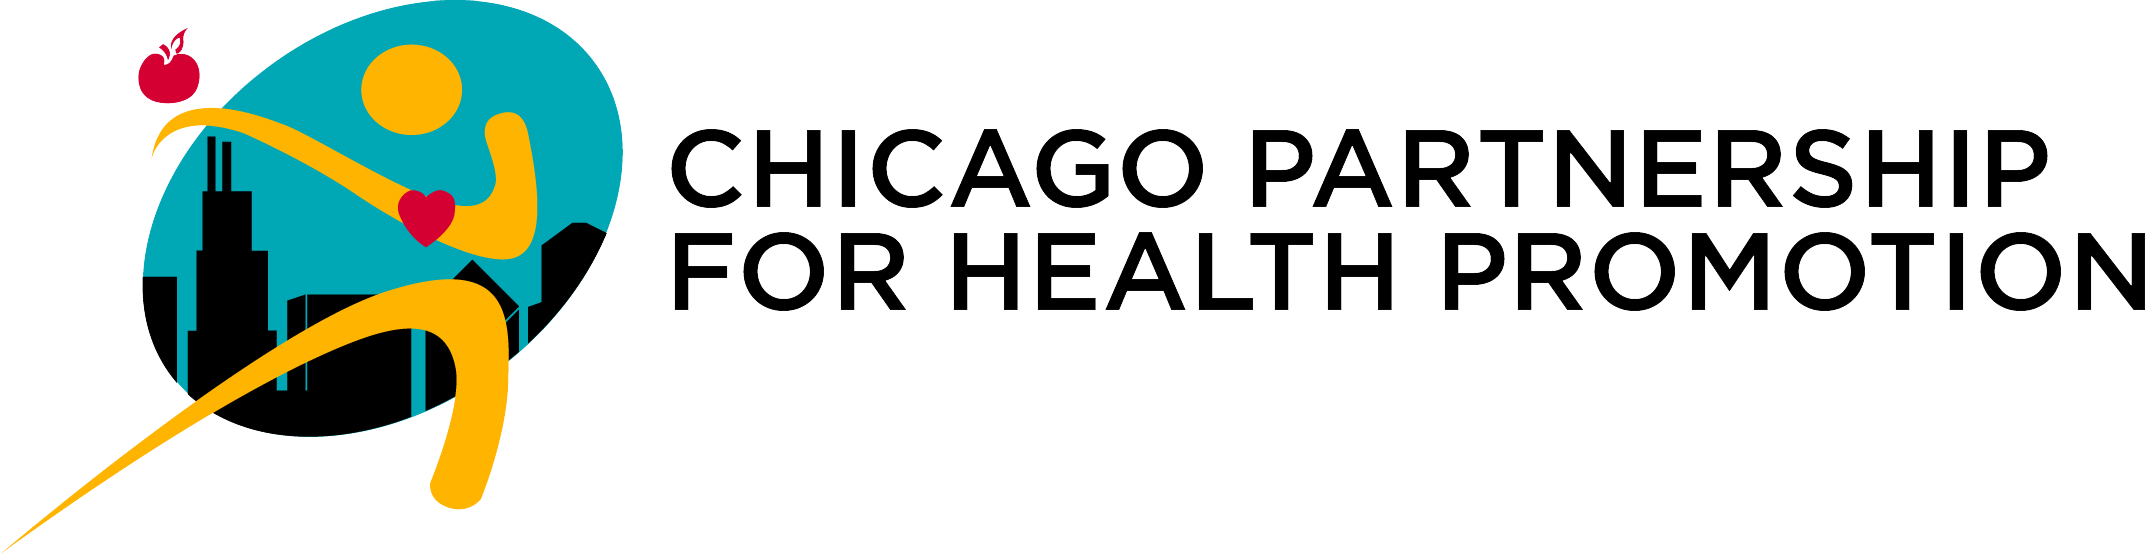 Chicago Partnership Health Promotion